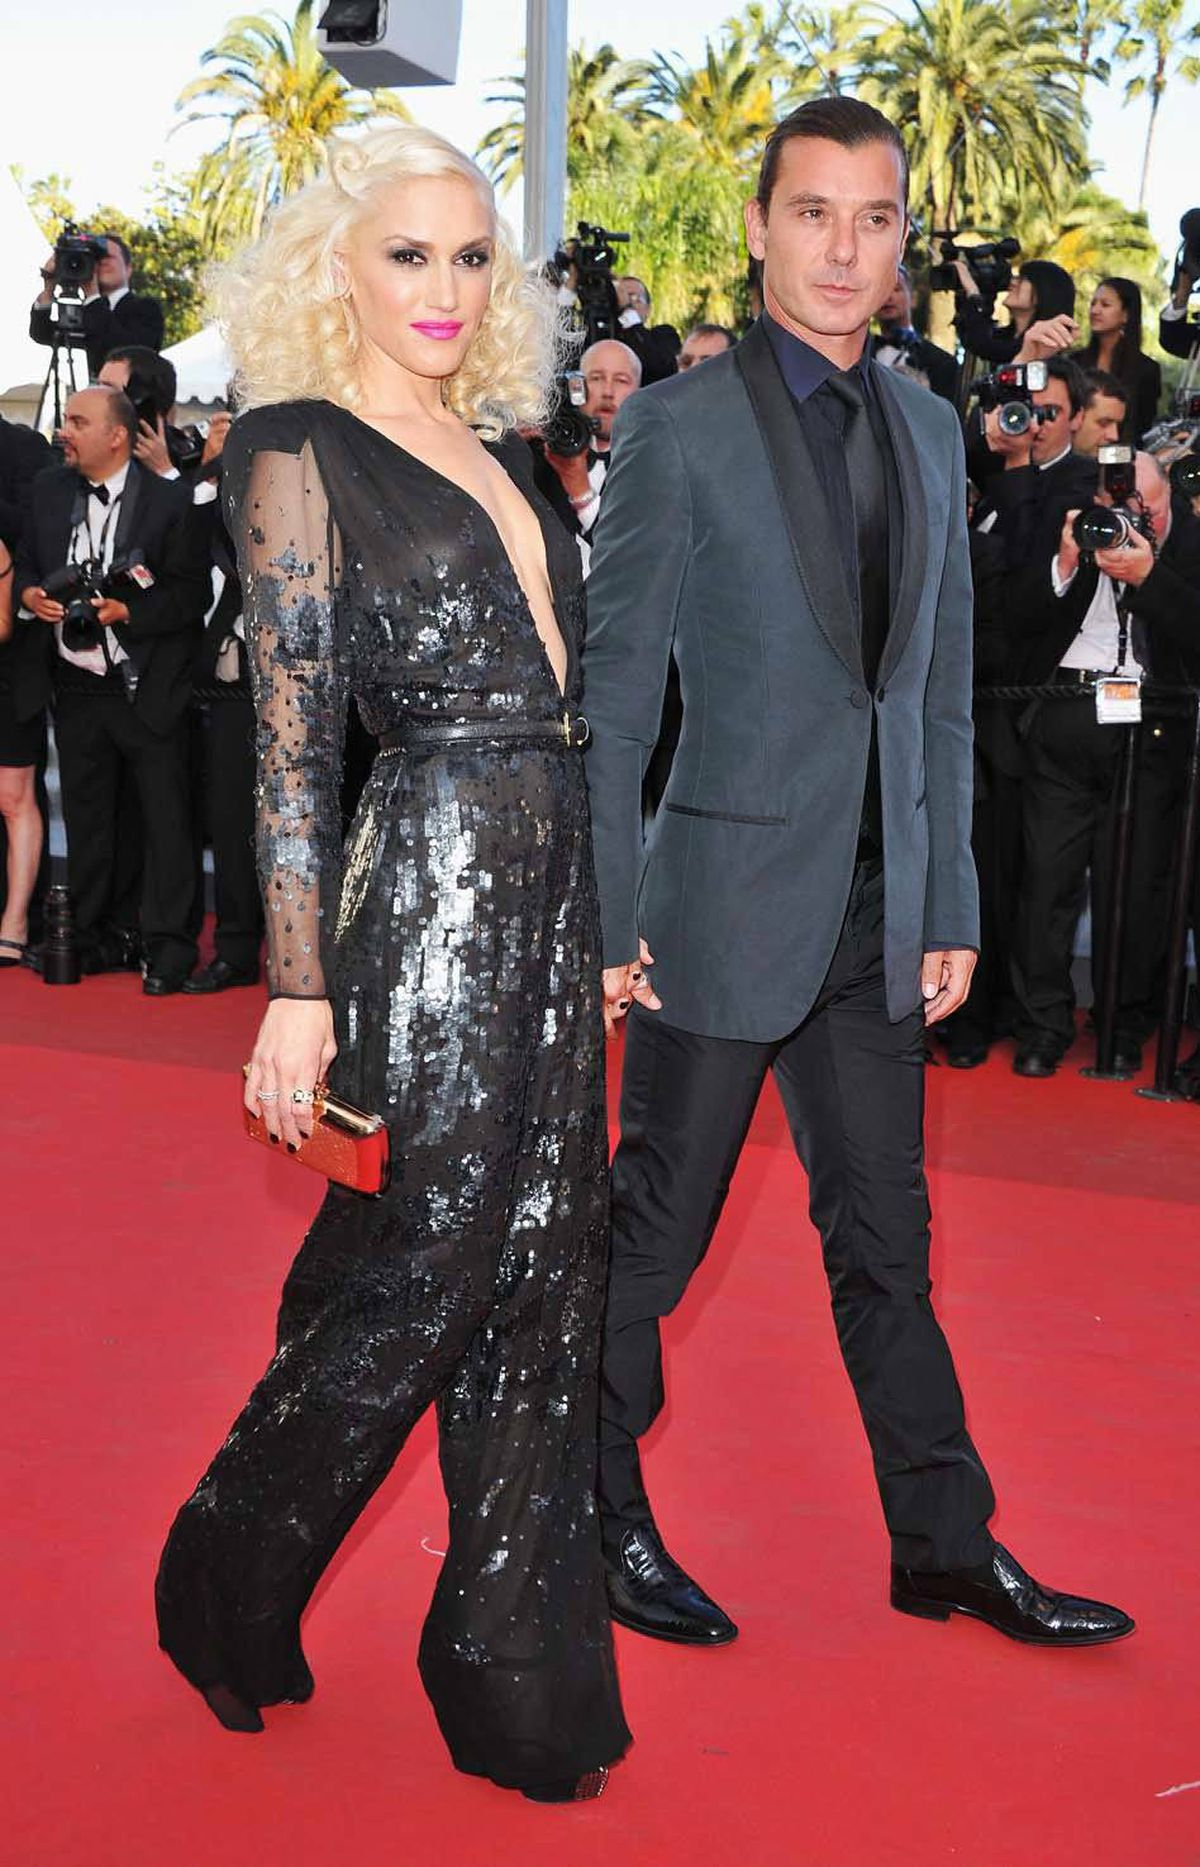 """Gwen Stefani and husband Gavin Rossdale attend """"The Tree Of Life"""" premiere at the Cannes Film Festival on Monday."""